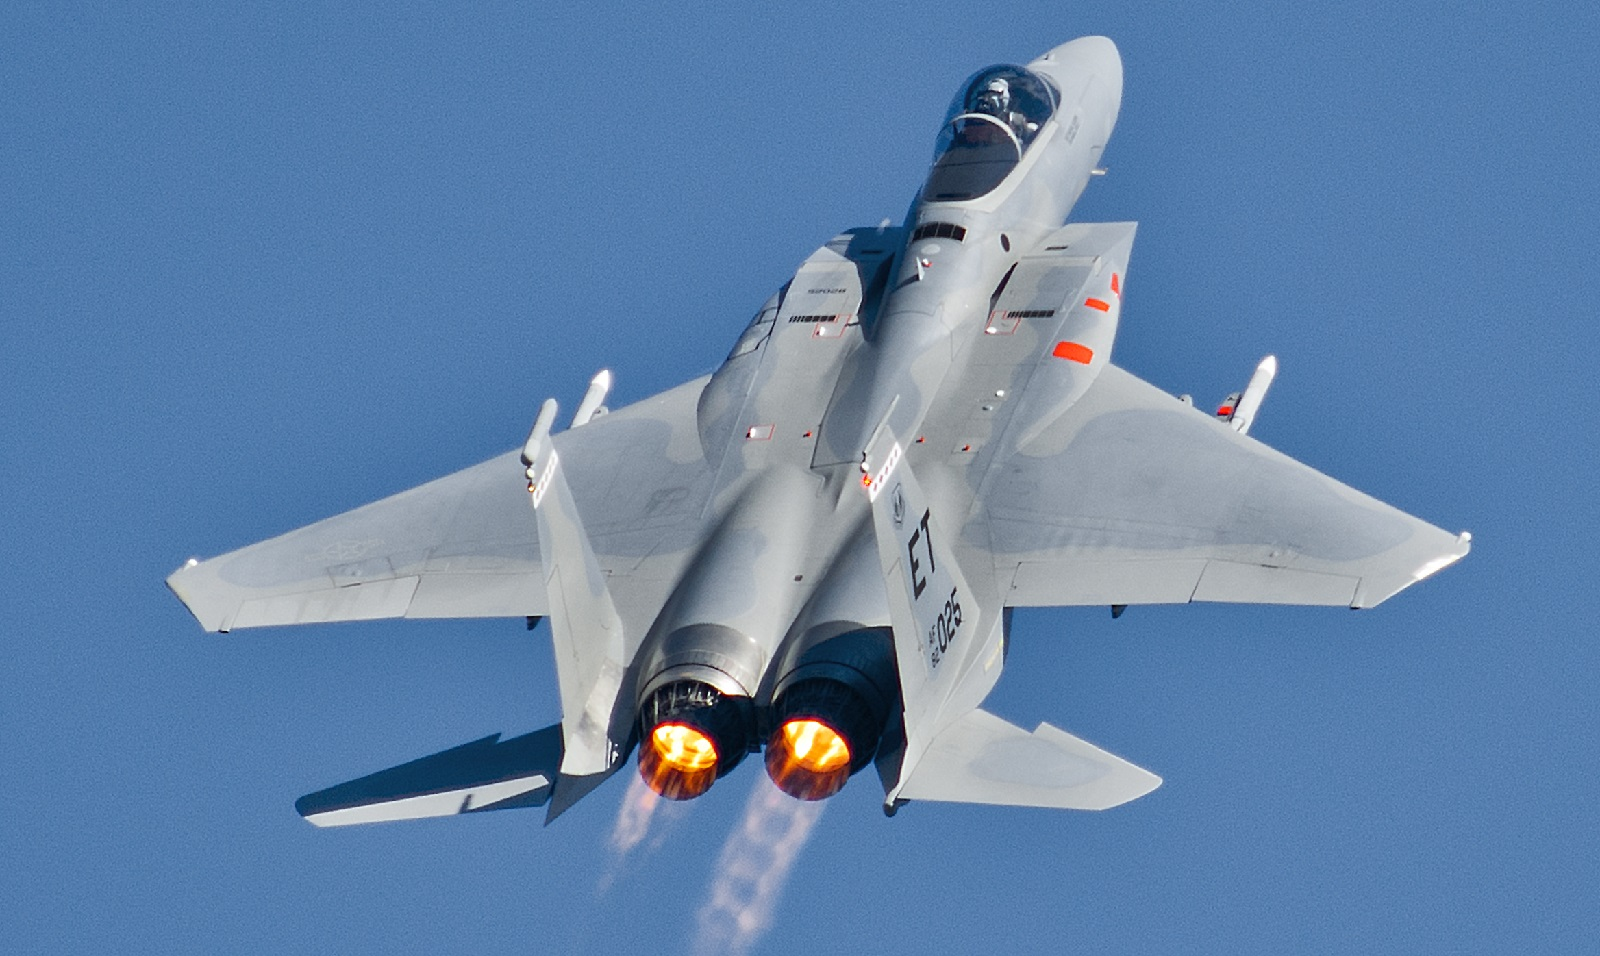 The Eagle Wins: How An 'Old' F-15C Could Beat Russia's Su-57 in a Dogfight